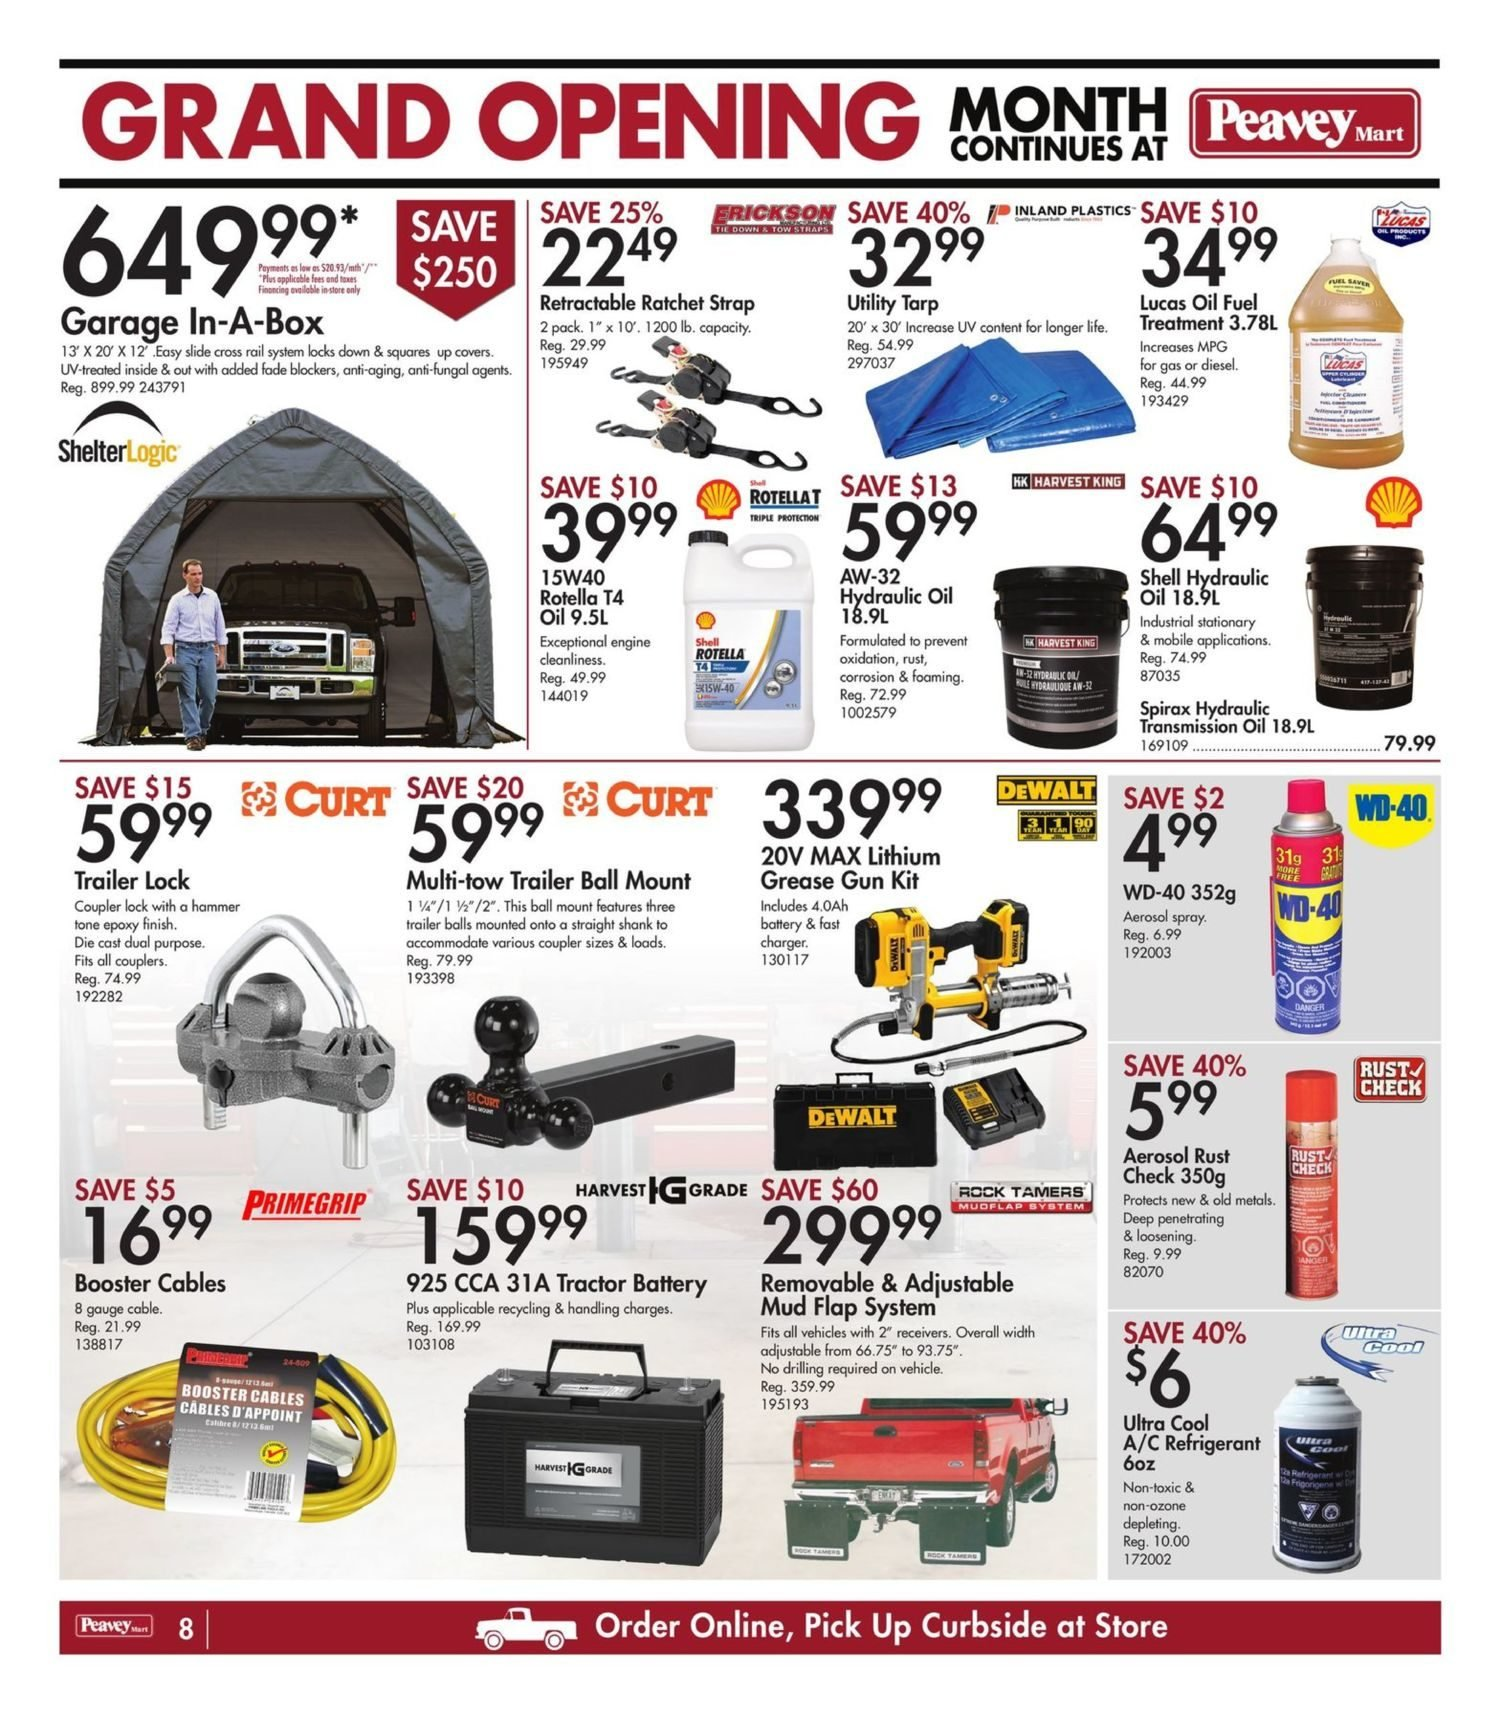 Peavey Mart - Weekly Flyer Specials - National Grand Opening Celebration - Page 11